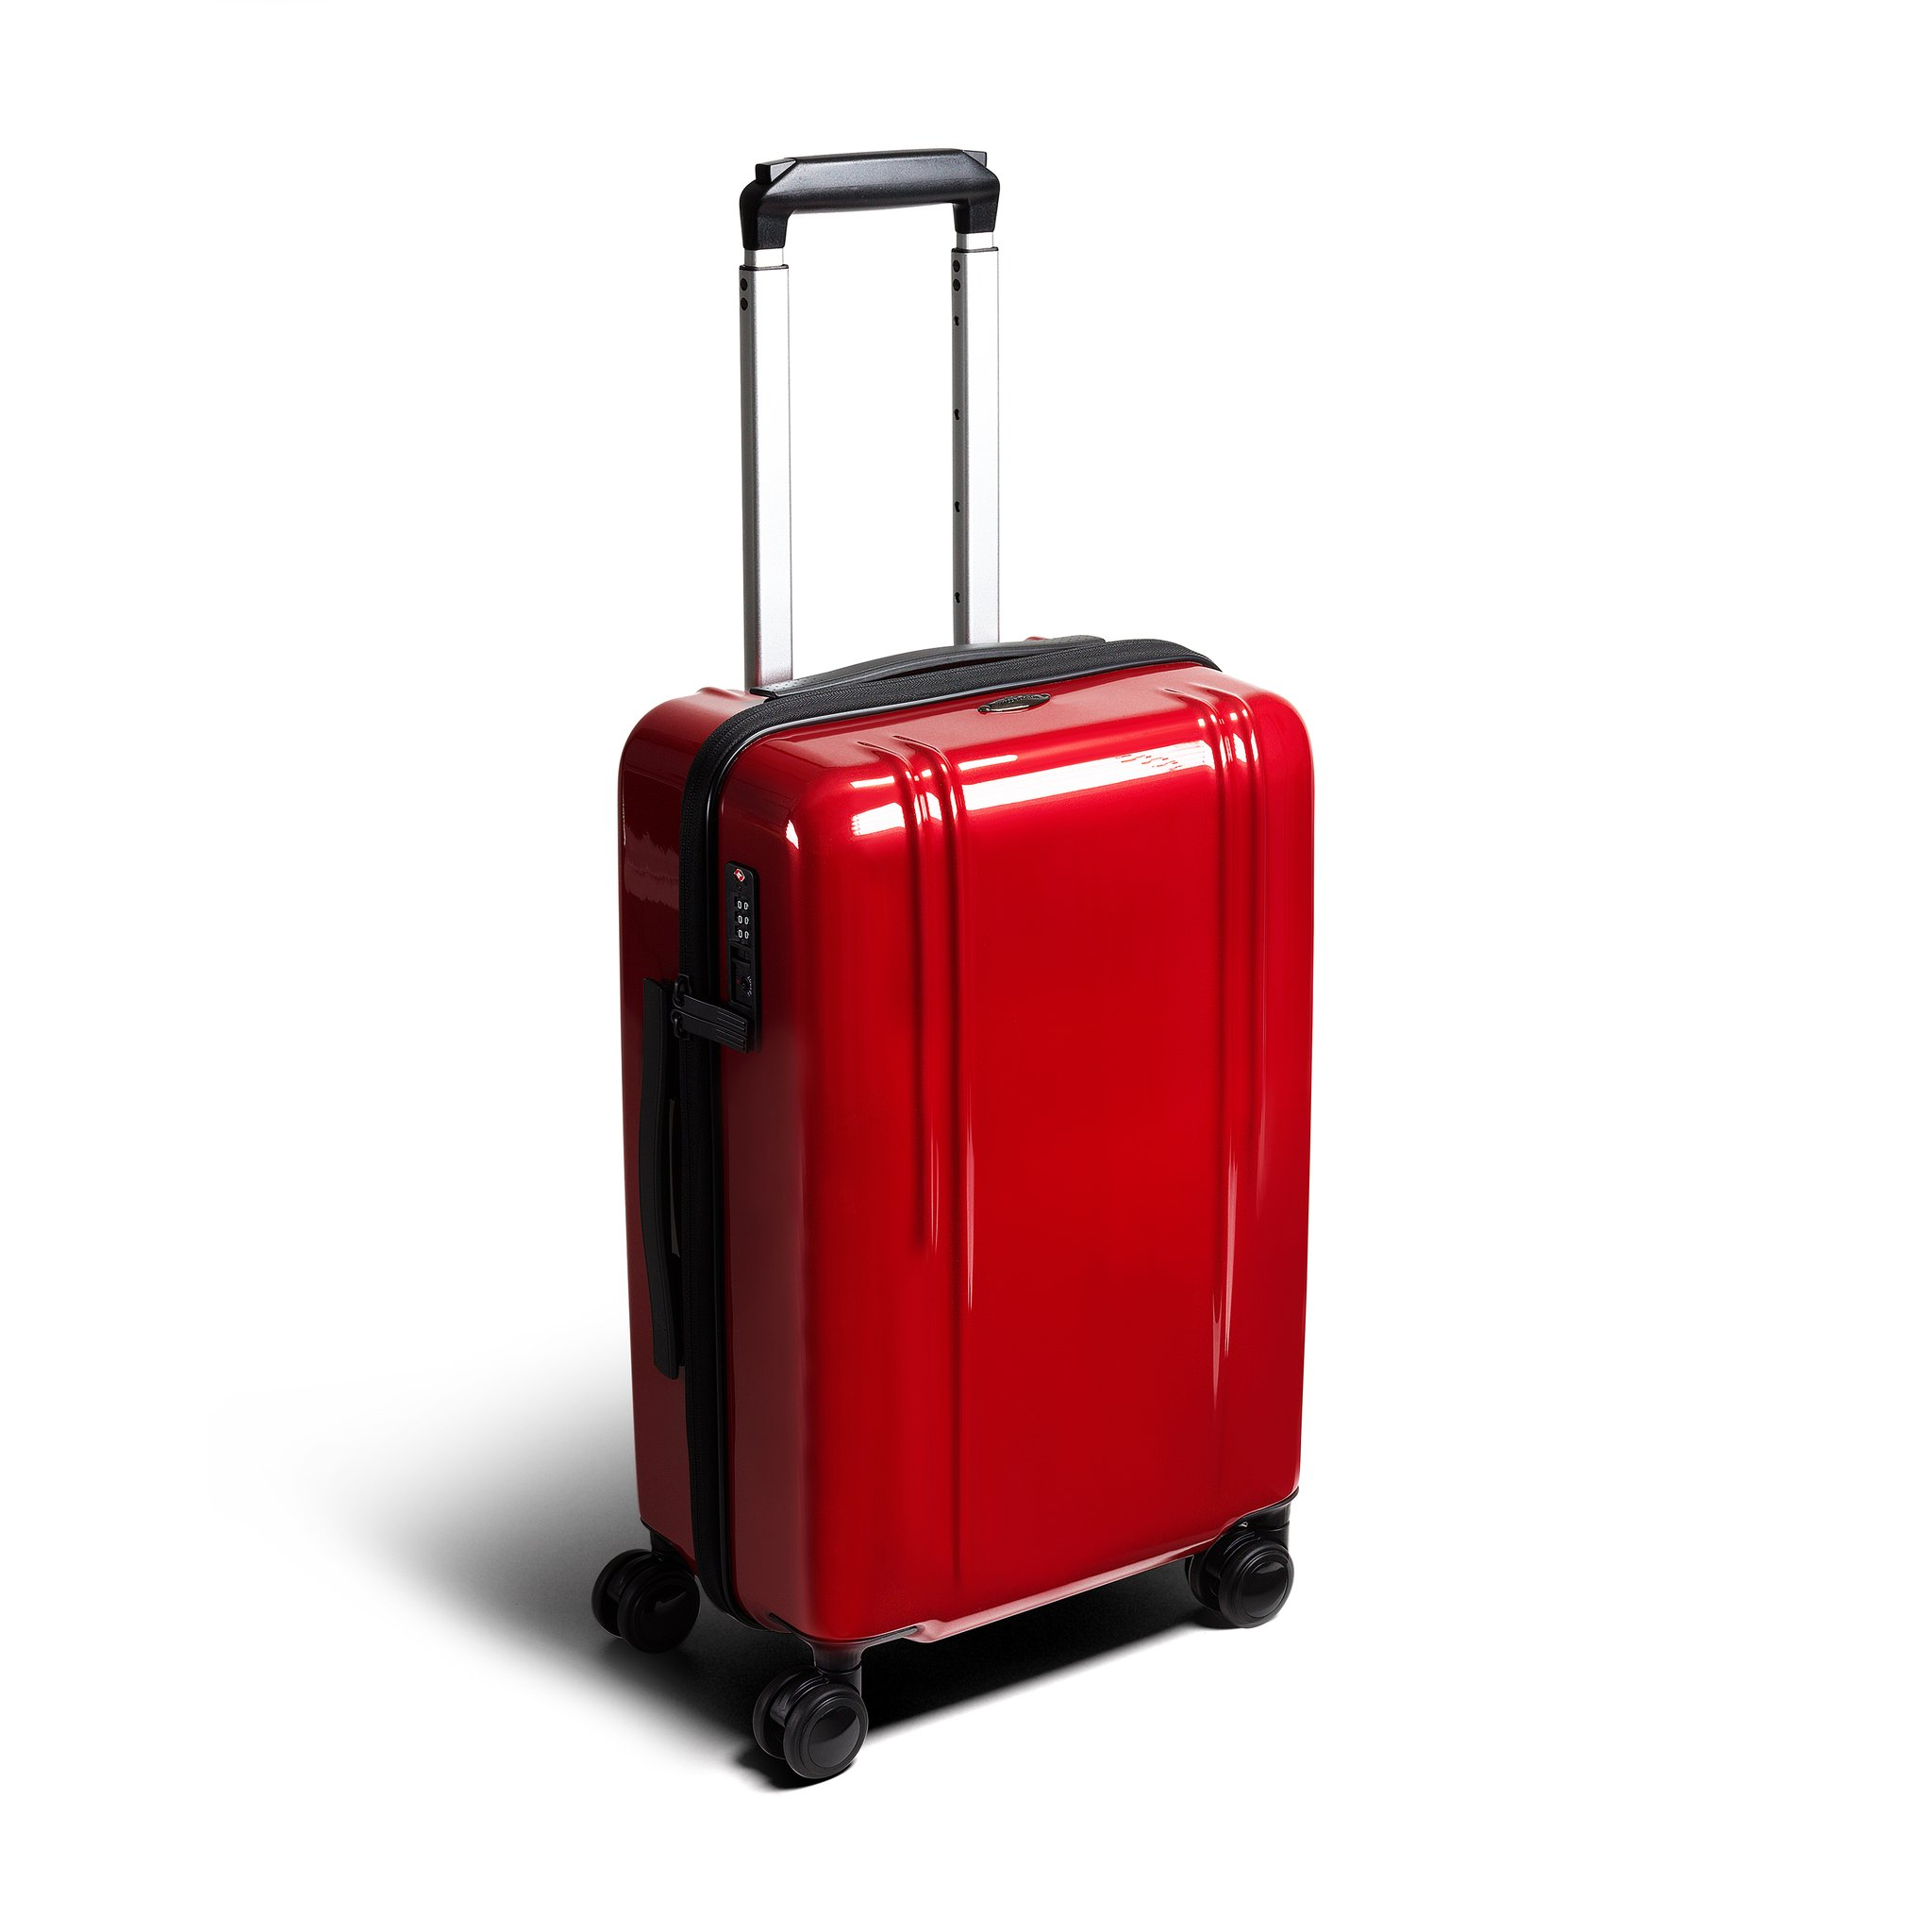 "ZRL - 20"" International Lightweight Carry-On Luggage by Zero Halliburton (Color: Red)"